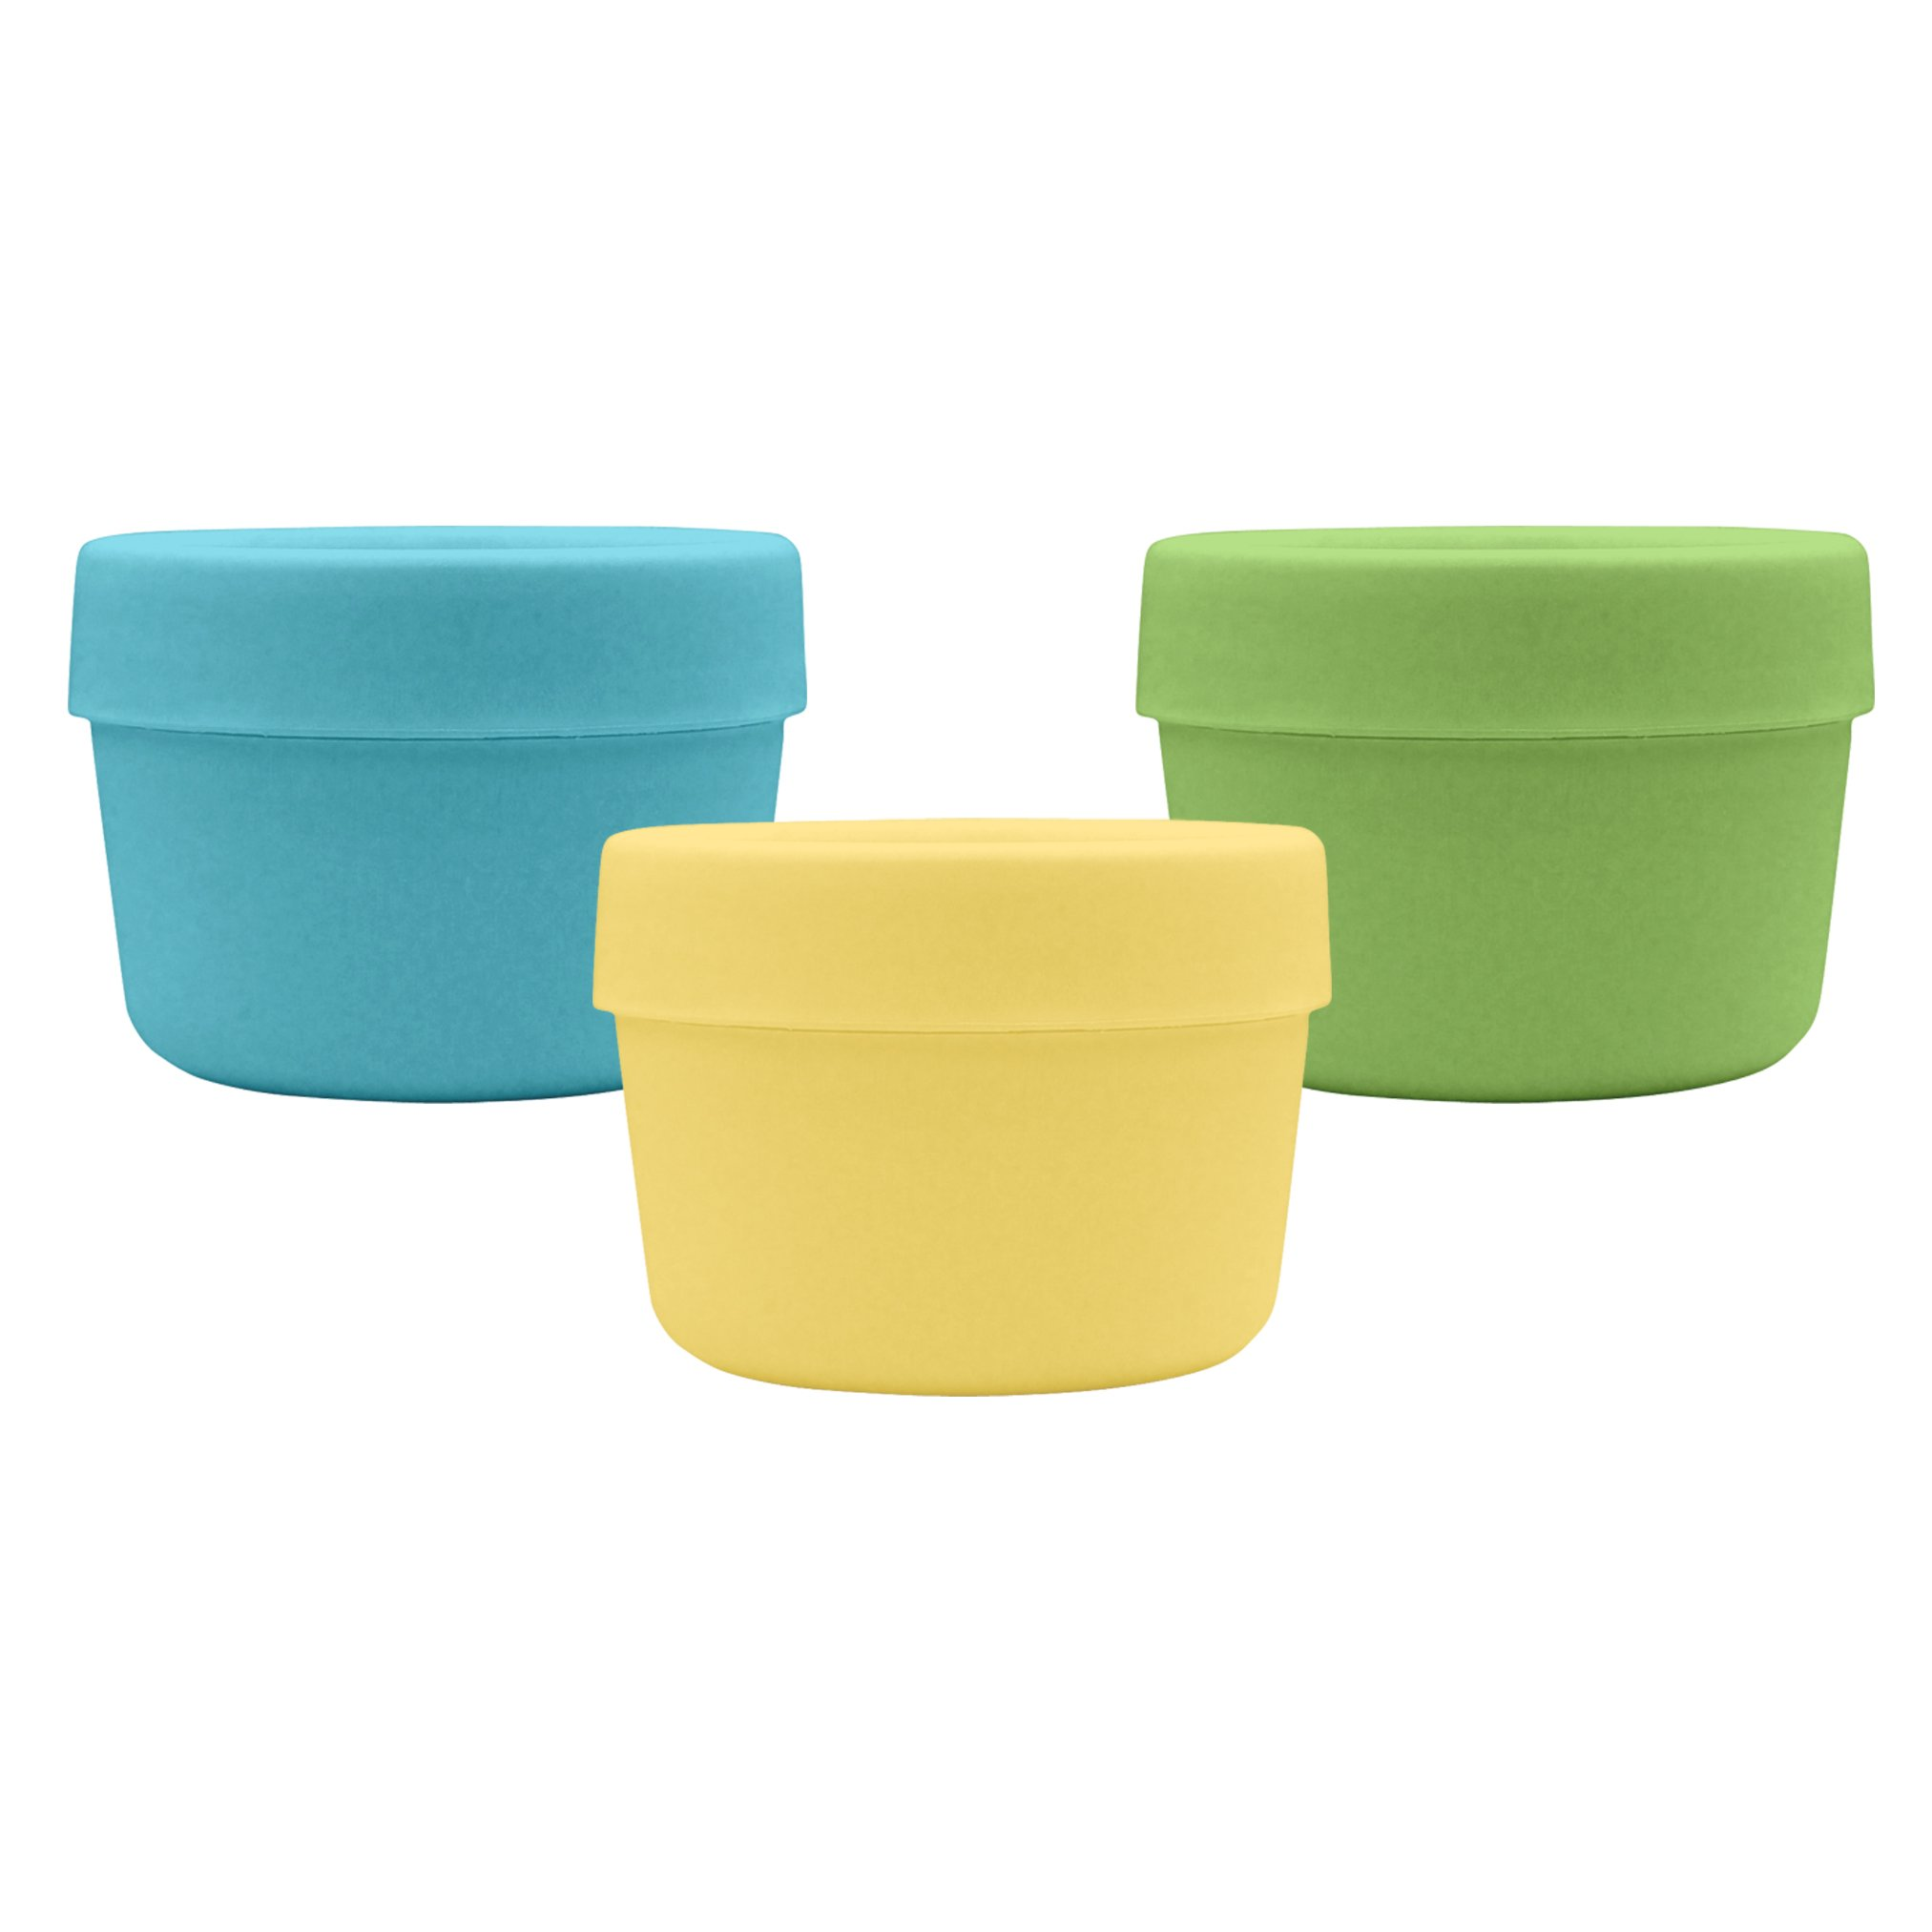 green sprouts Sprout Ware Snack Cups made from Plants-Aqua Set-6mo+